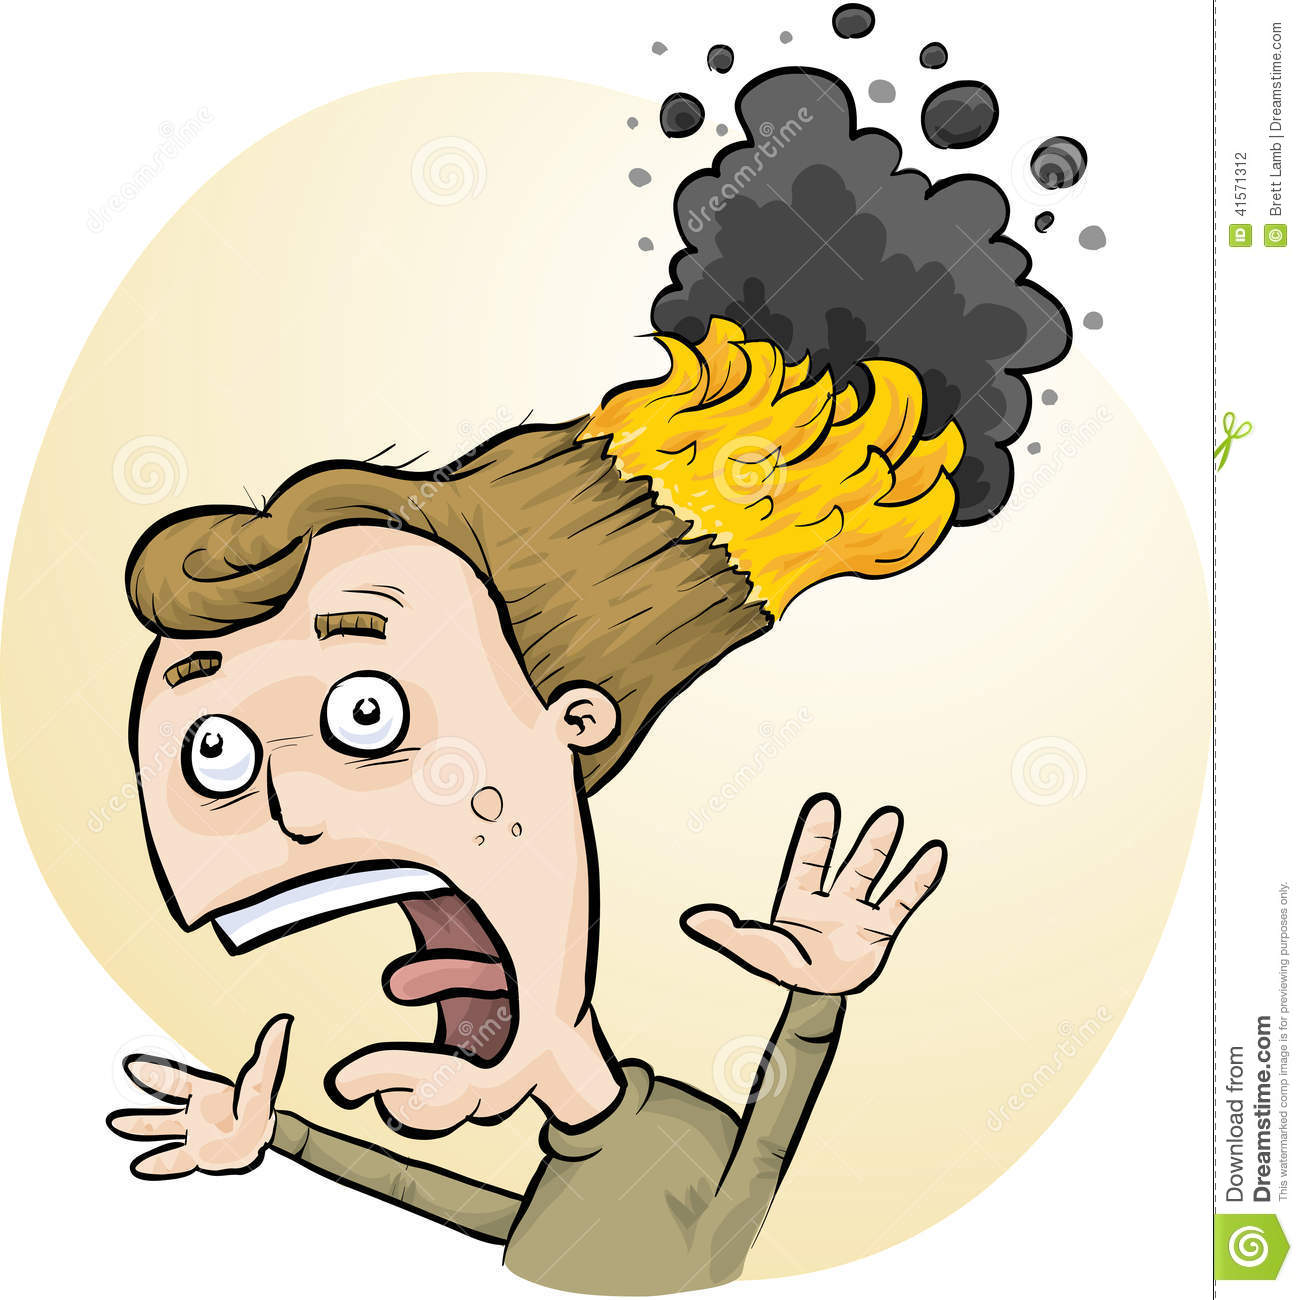 Cartoon Man Burning Hair Stock Photos, Images, & Pictures.